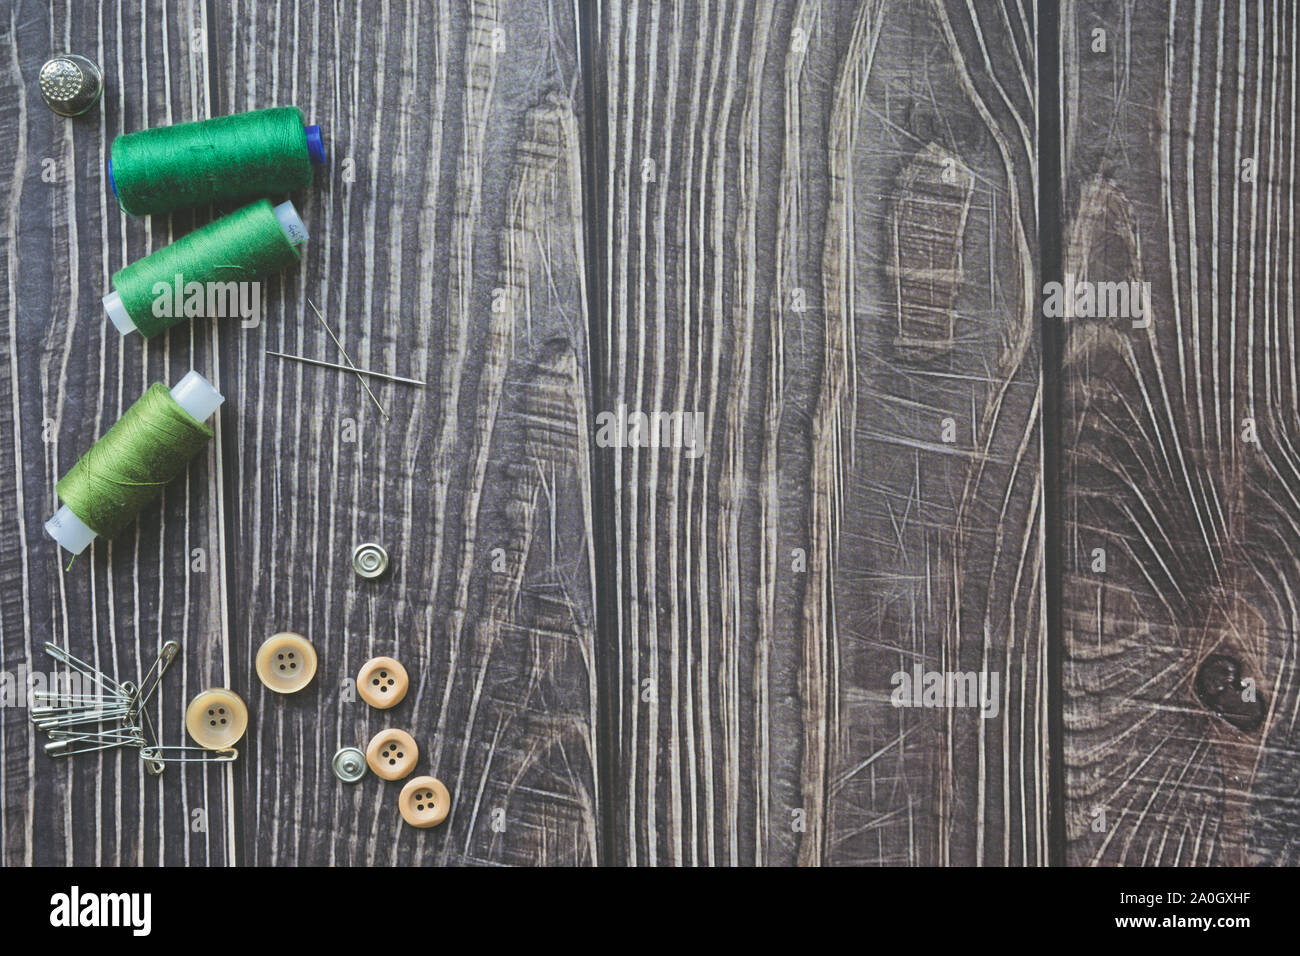 Sewing accessories on dark wooden background. Green sewing threads, needle, buttons and pins. top view, flatlay Stock Photo